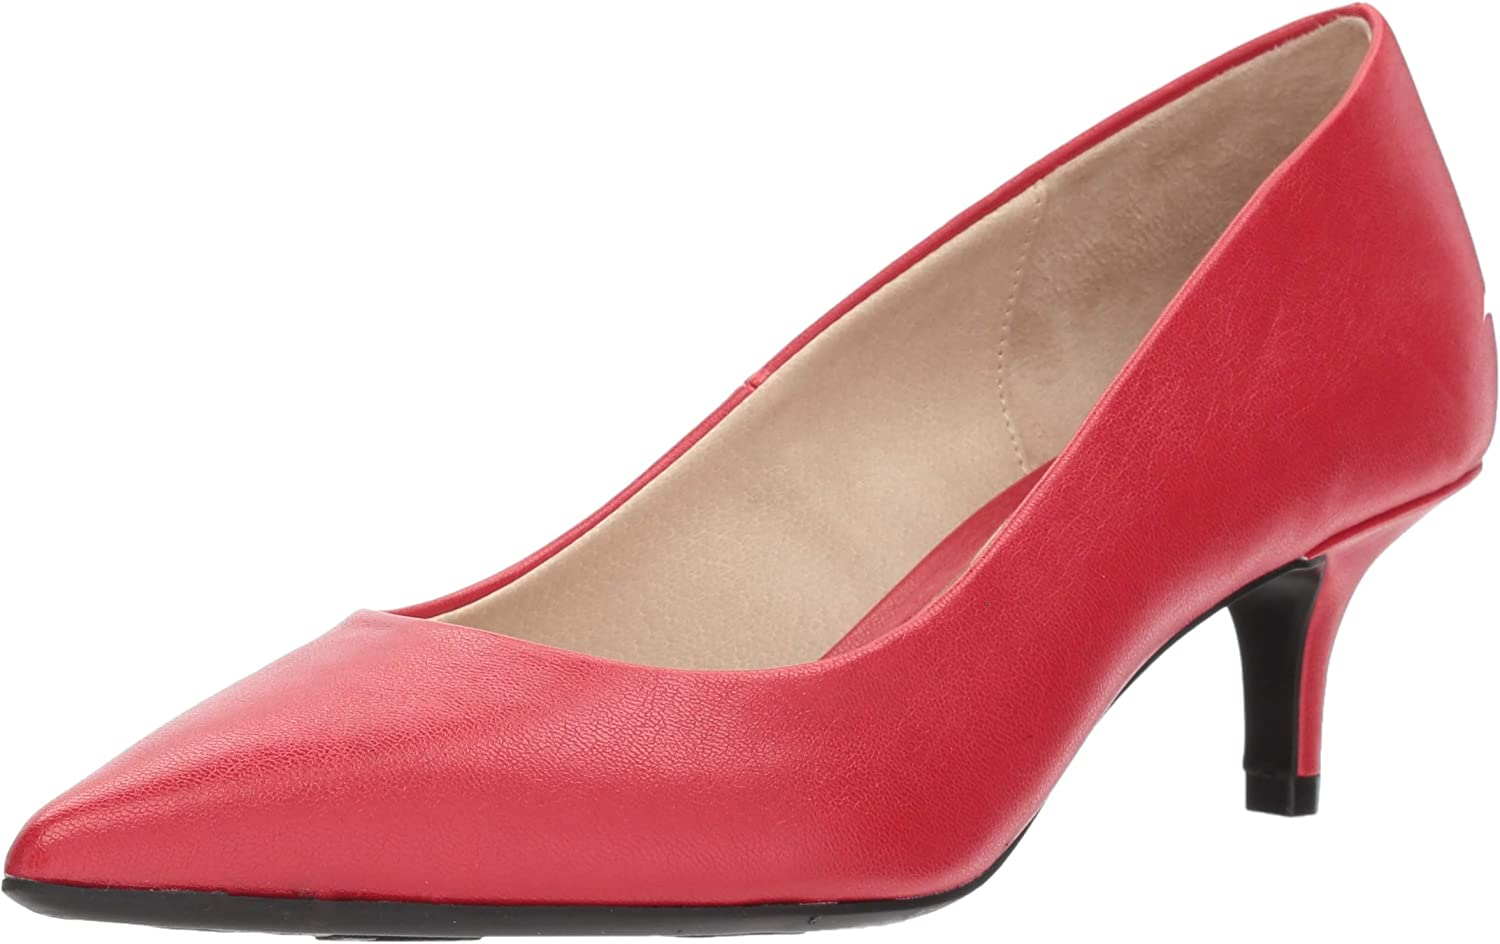 LifeStride Womens Pretty Low Heel Pump Pump